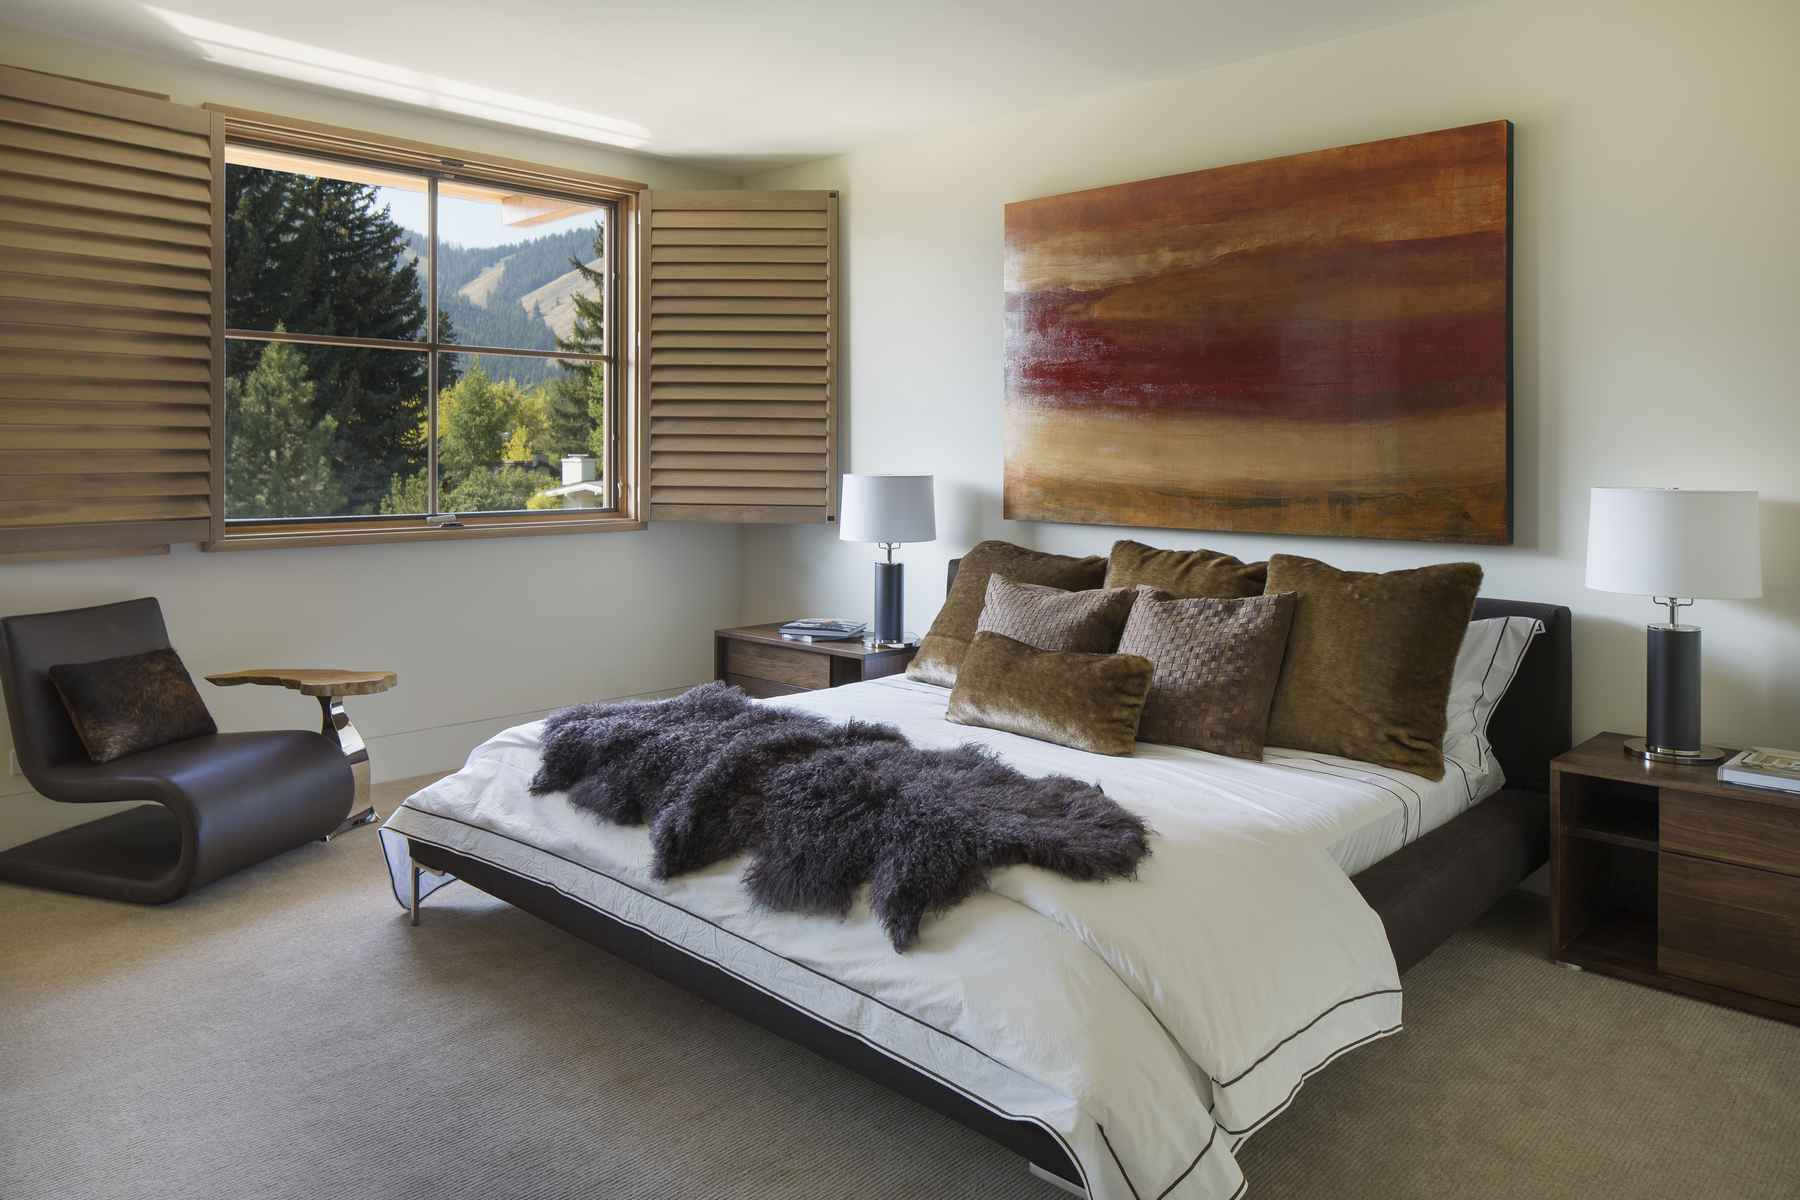 Additional photo for property listing at Extraordinary Mountain Contemporary 600 E Second St Unit 2 Ketchum, Idaho 83340 United States